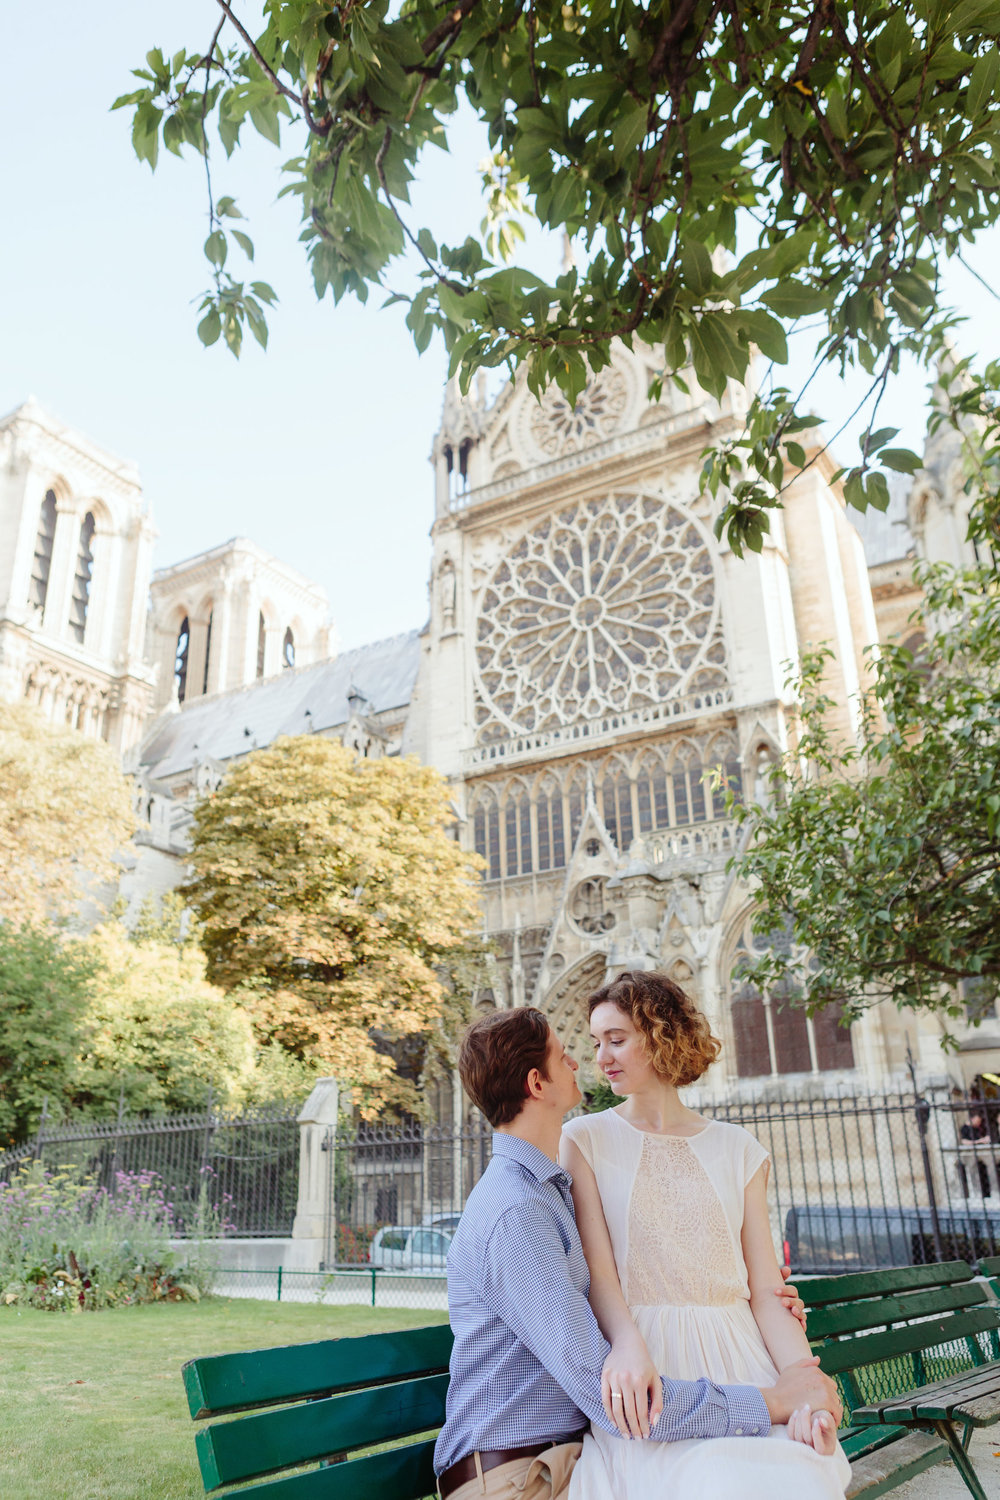 Couple in love sitting on a bench by Notre Dame Cathedral in Paris captured by Paris Photographer Federico Guendel IheartParisFr